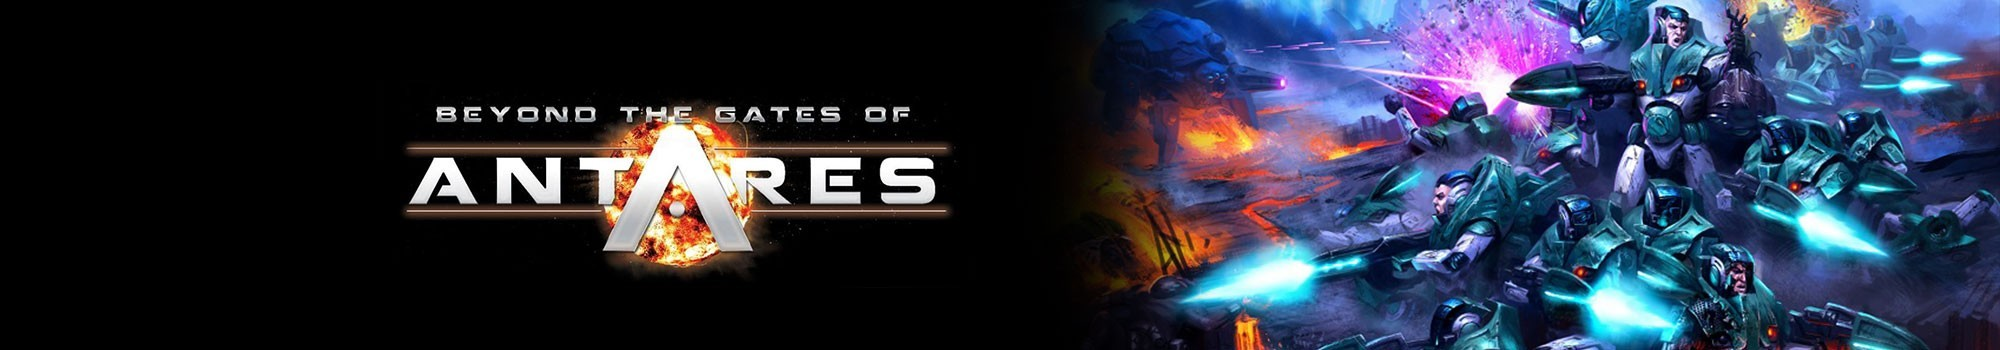 beyond-the-gates-of-antares